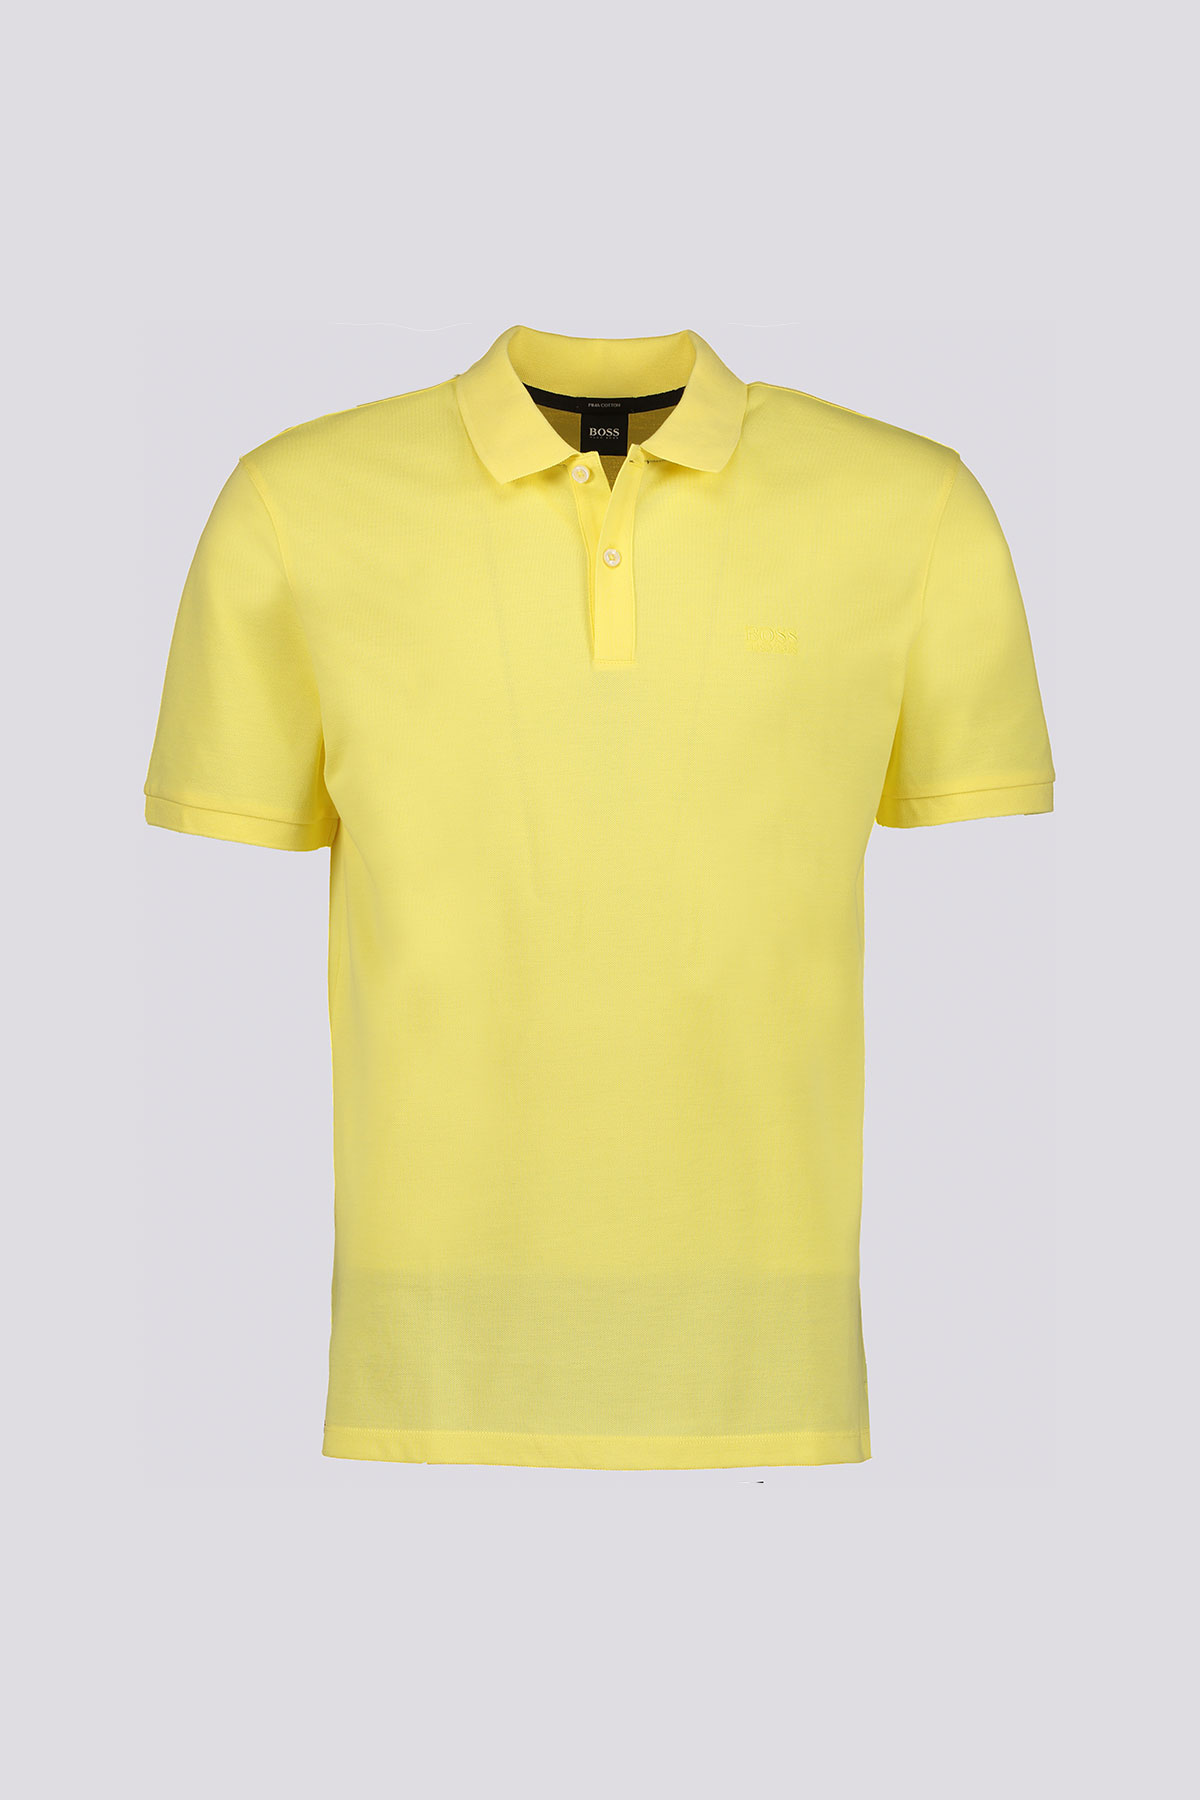 Playera Polo marca BOSS regular fit en piqué de algodón Pima